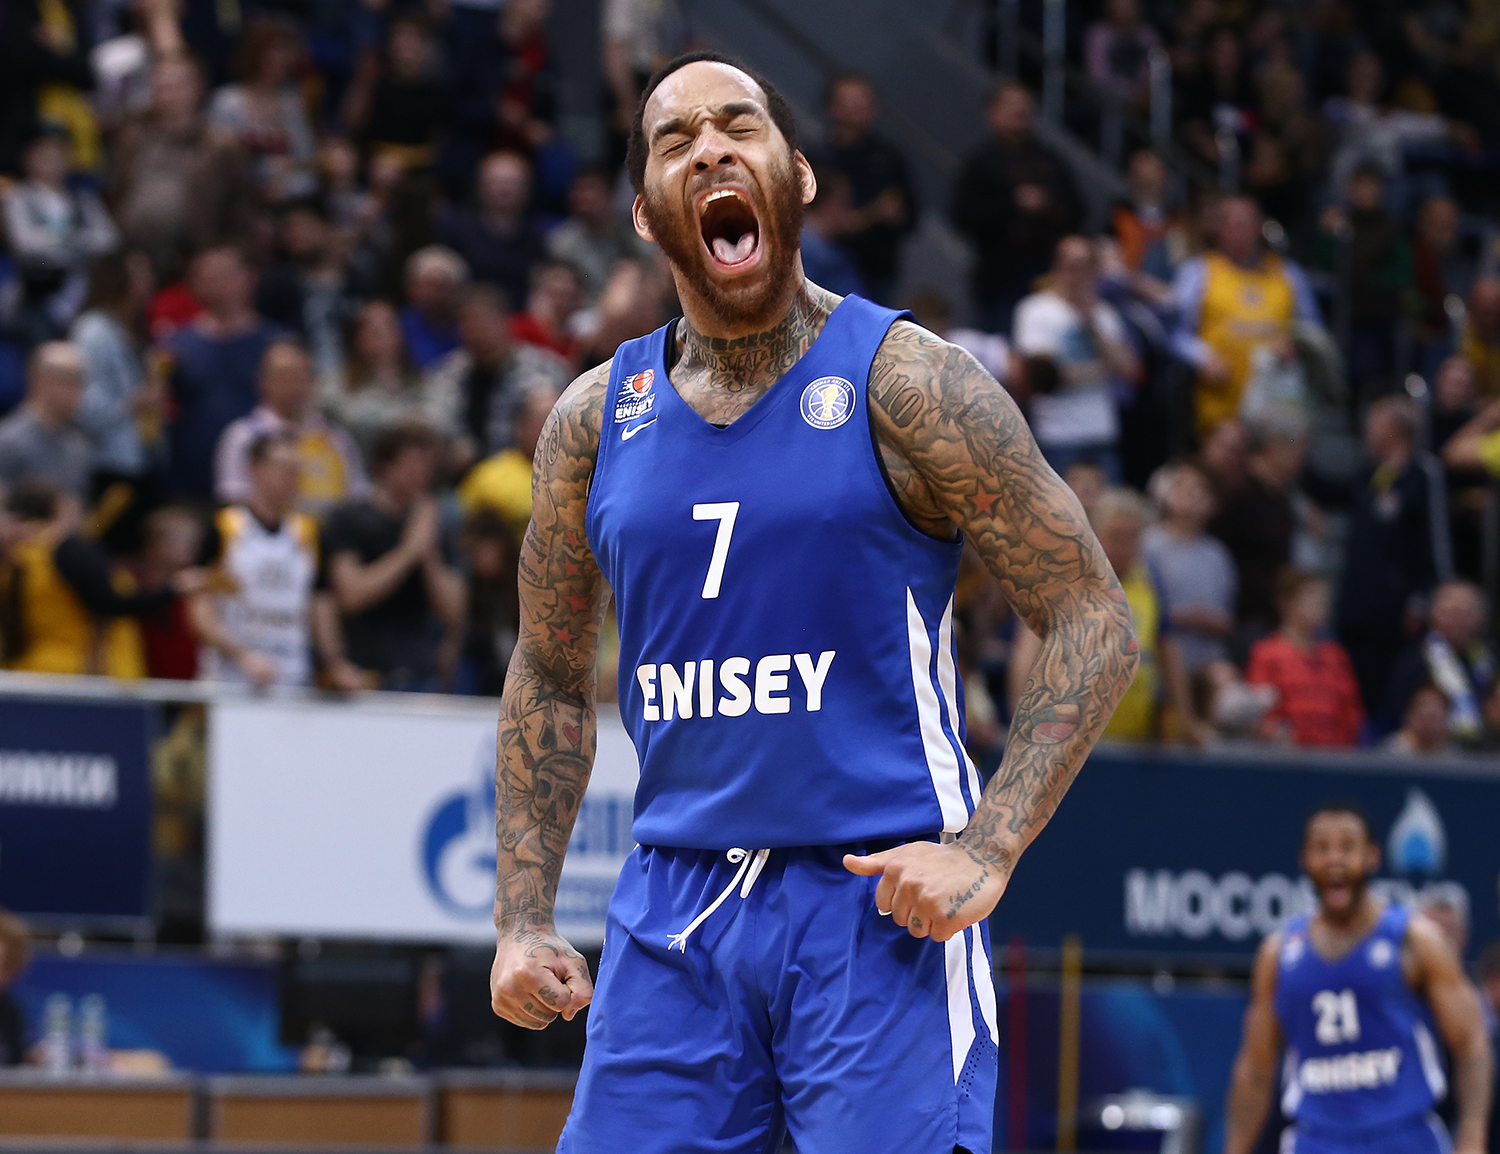 Khimki Upset By Enisey, Playoff Picture Takes Shape